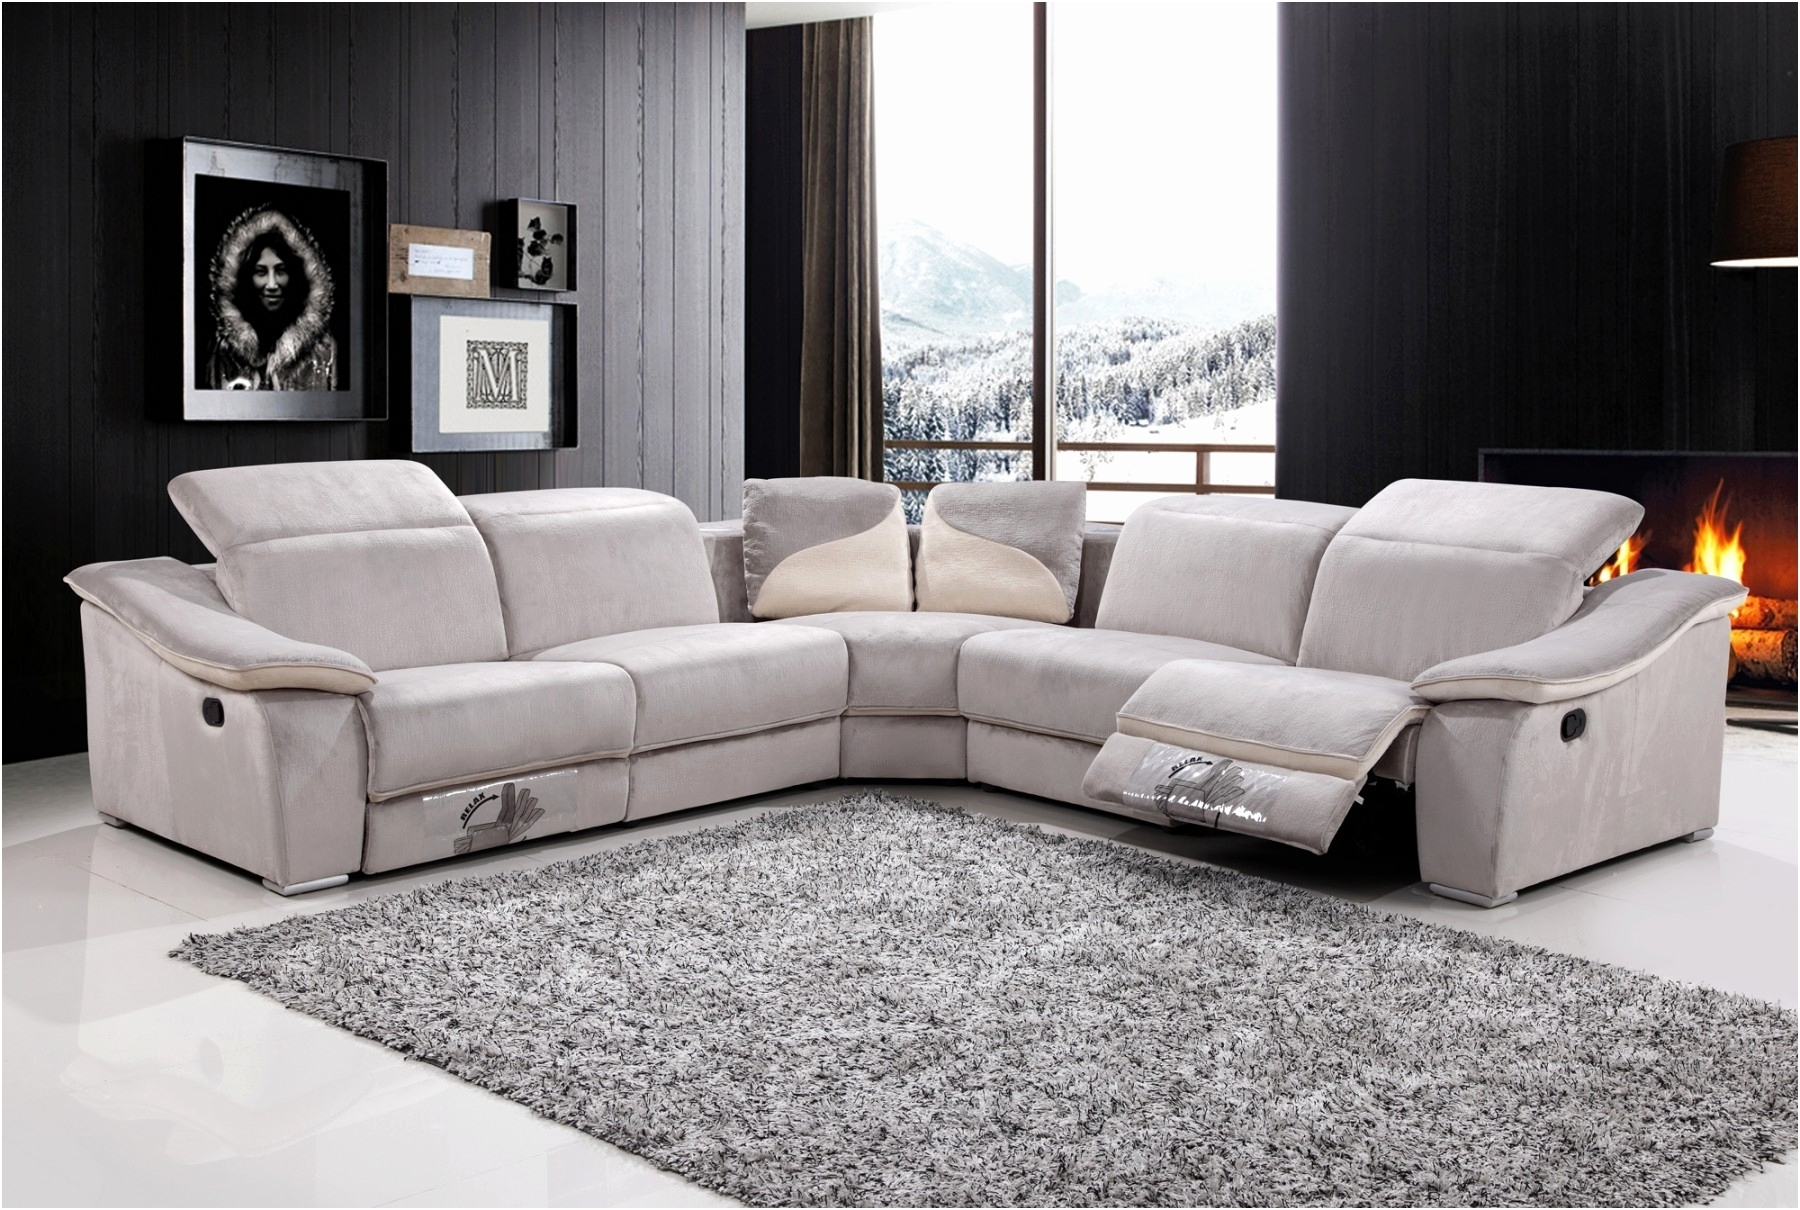 Bay Area Sofa Fresh The Most Popular Best Quality Sectional Sofa 95 Within Quality Sectional Sofas (View 8 of 10)